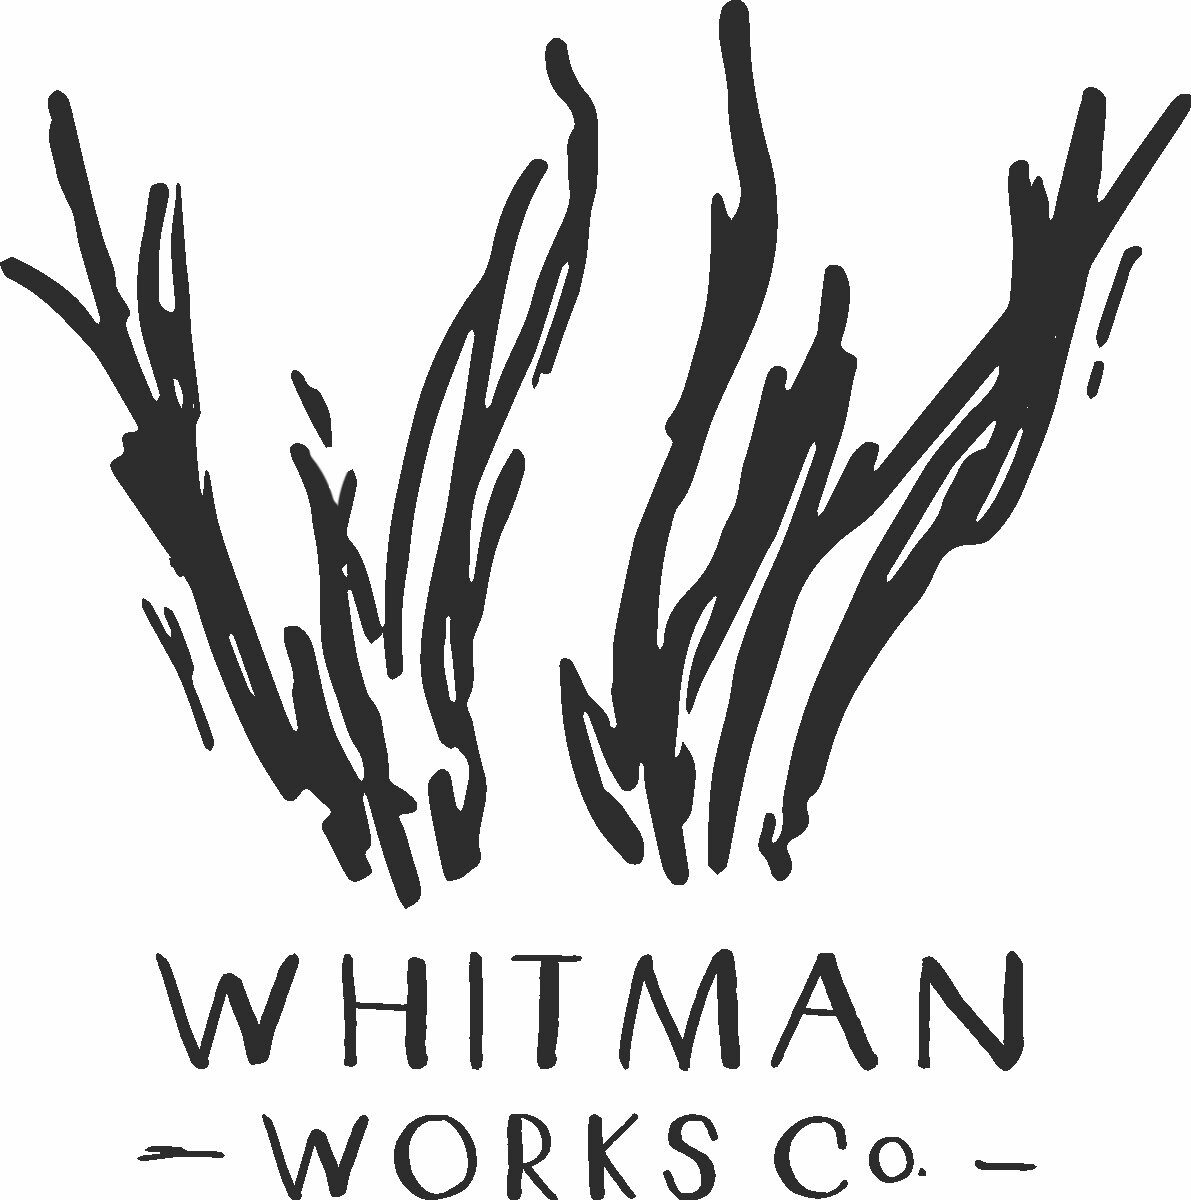 Whitman Works Company